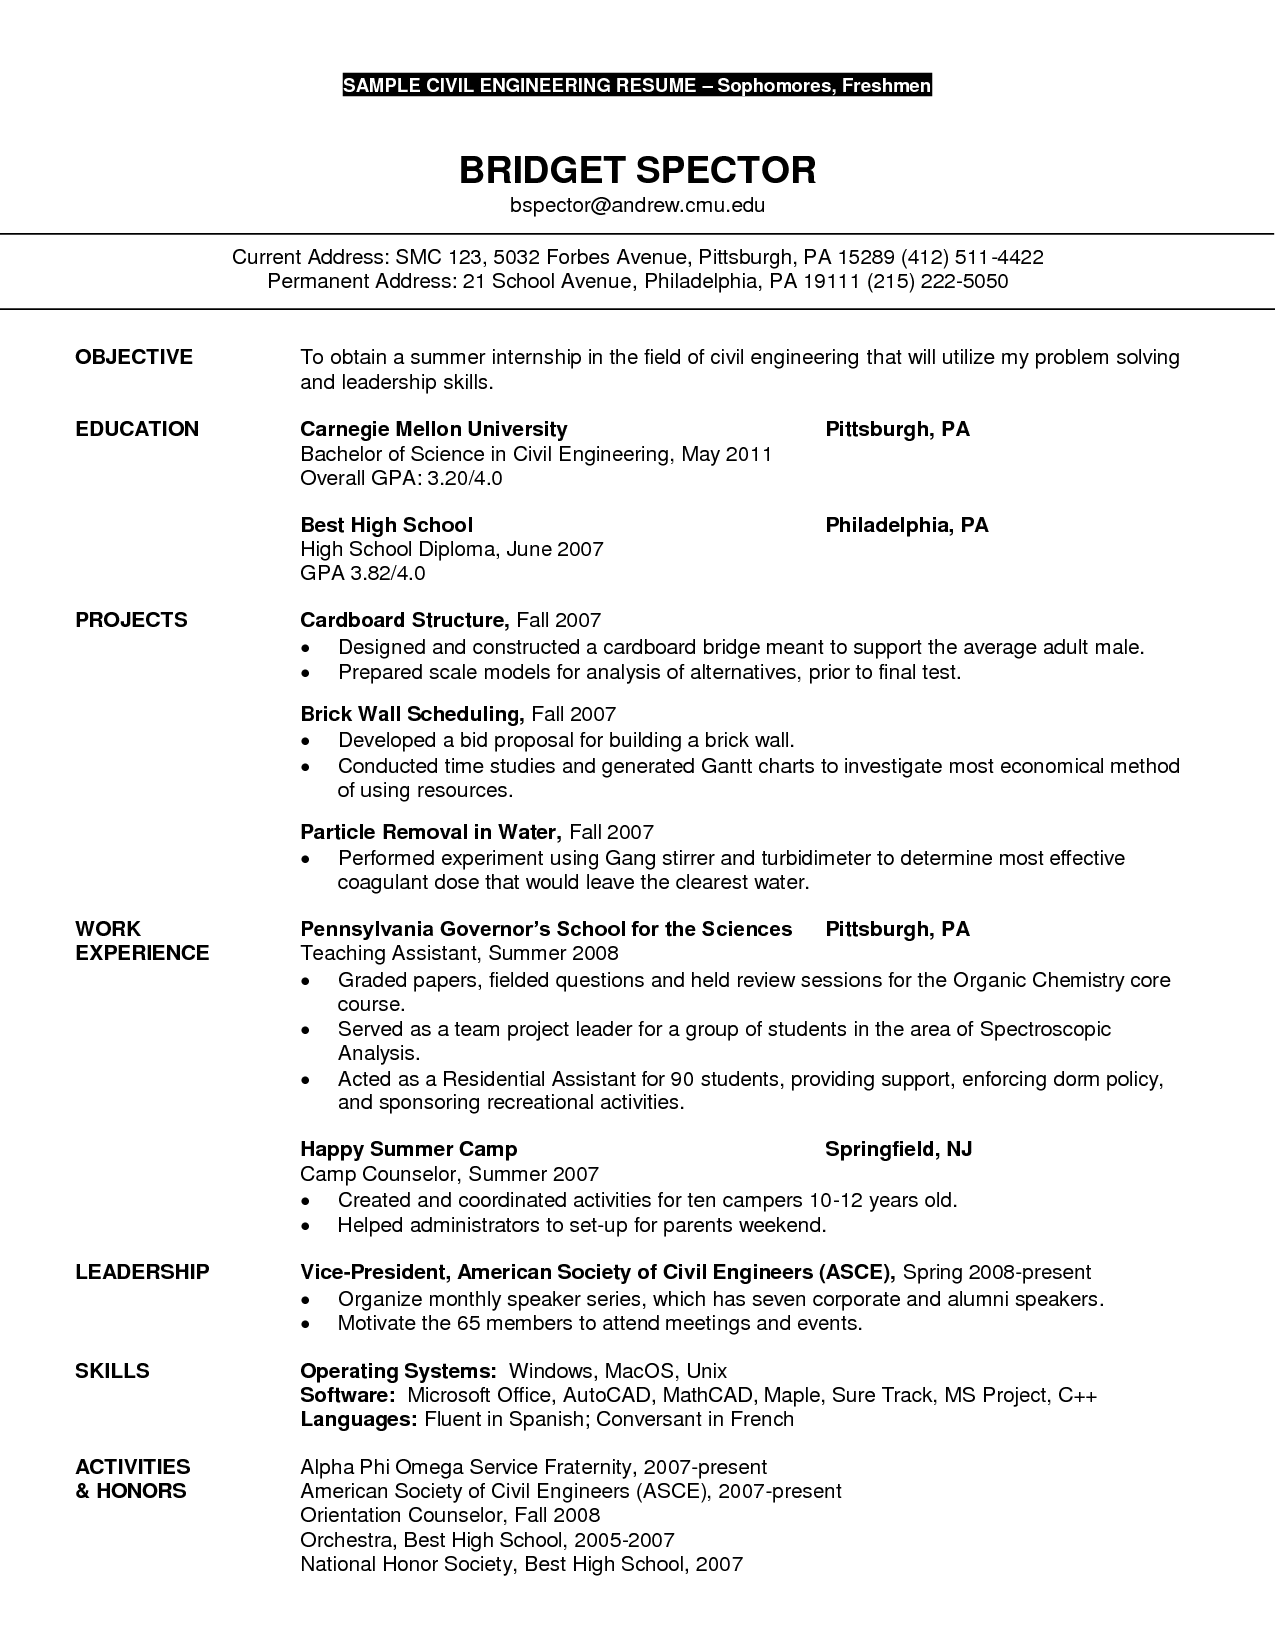 Food Service Worker Resume Civil Engineer Resume Sample  Httpwwwresumecareercivil